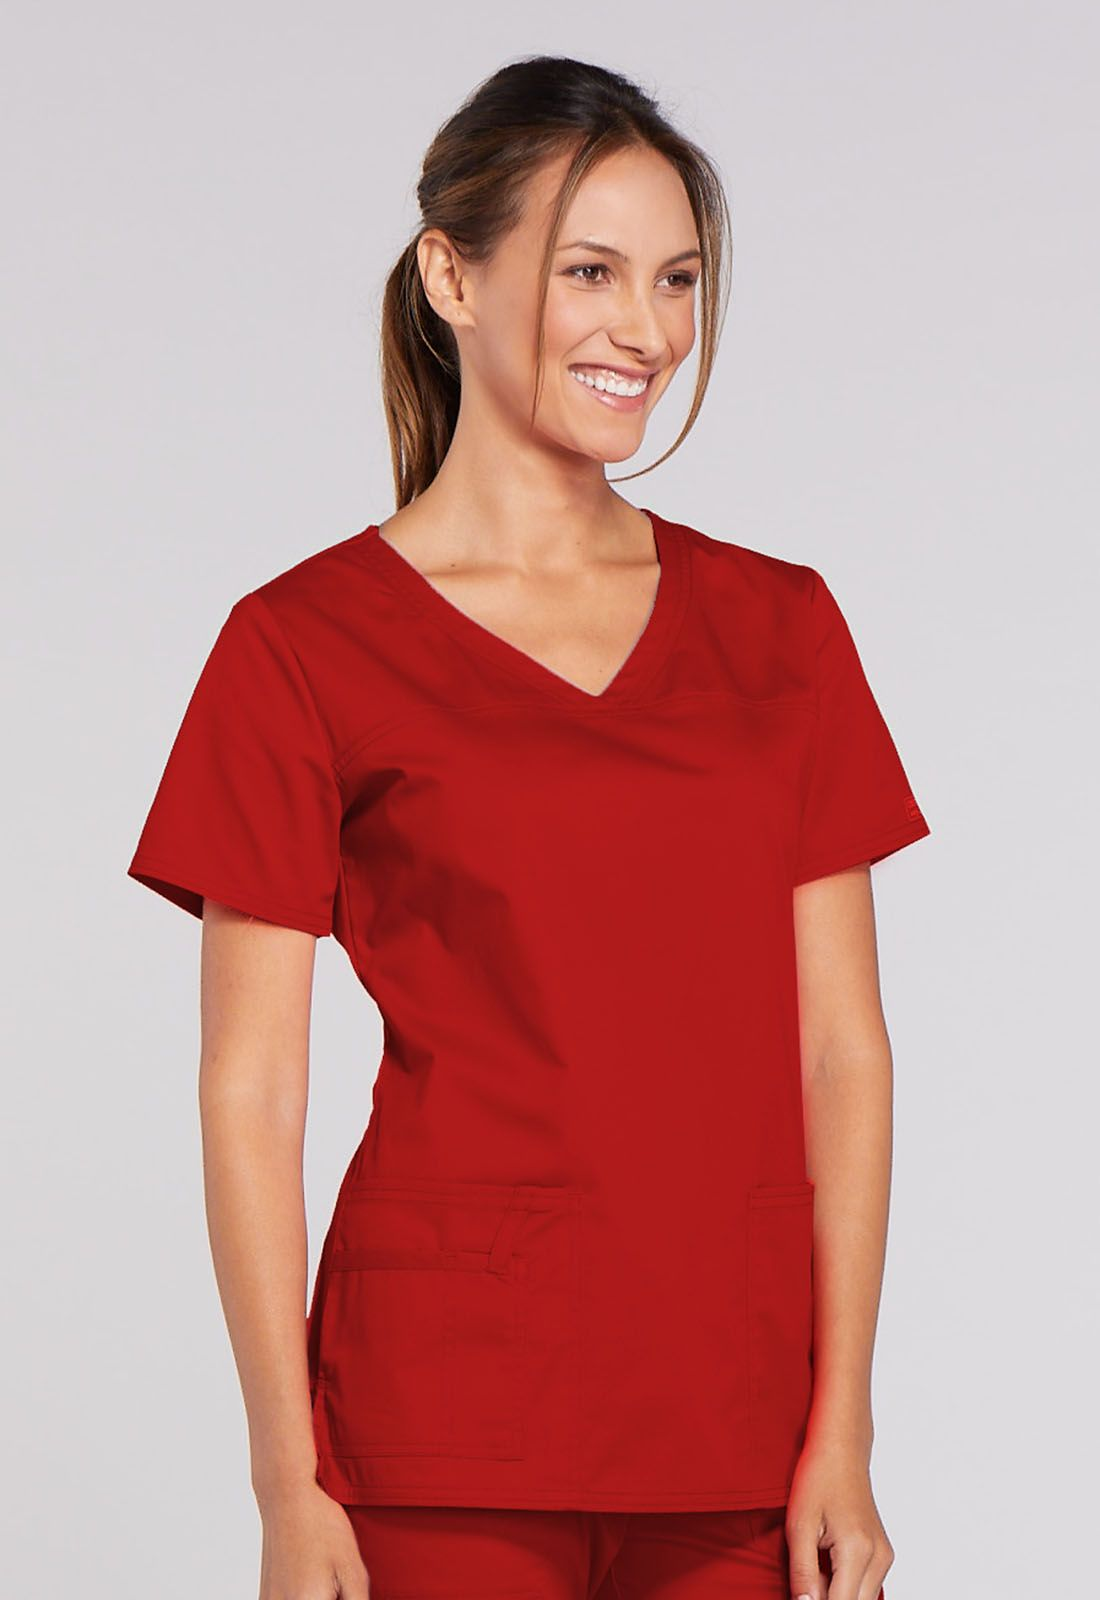 https://medcloth.by/images/stories/virtuemart/product/cherokee-4727-red-35.jpg